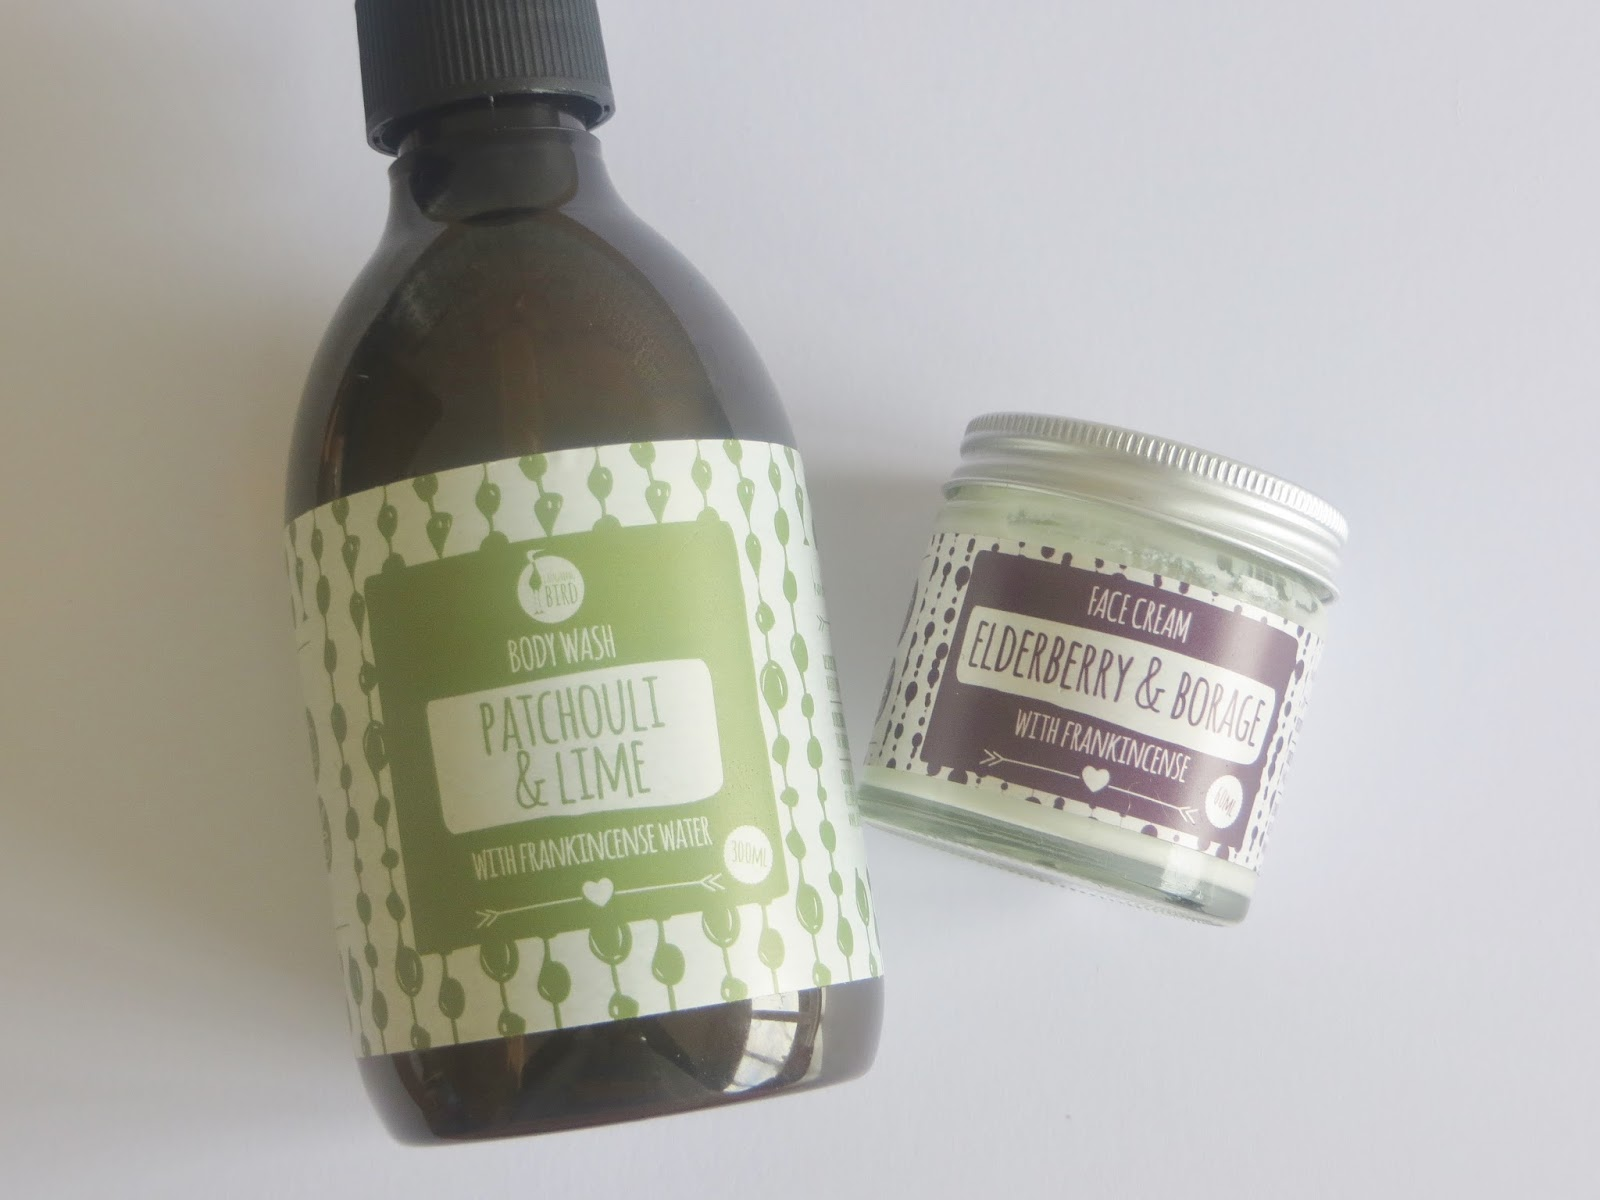 All natural body wash and face cream from Laughing Bird